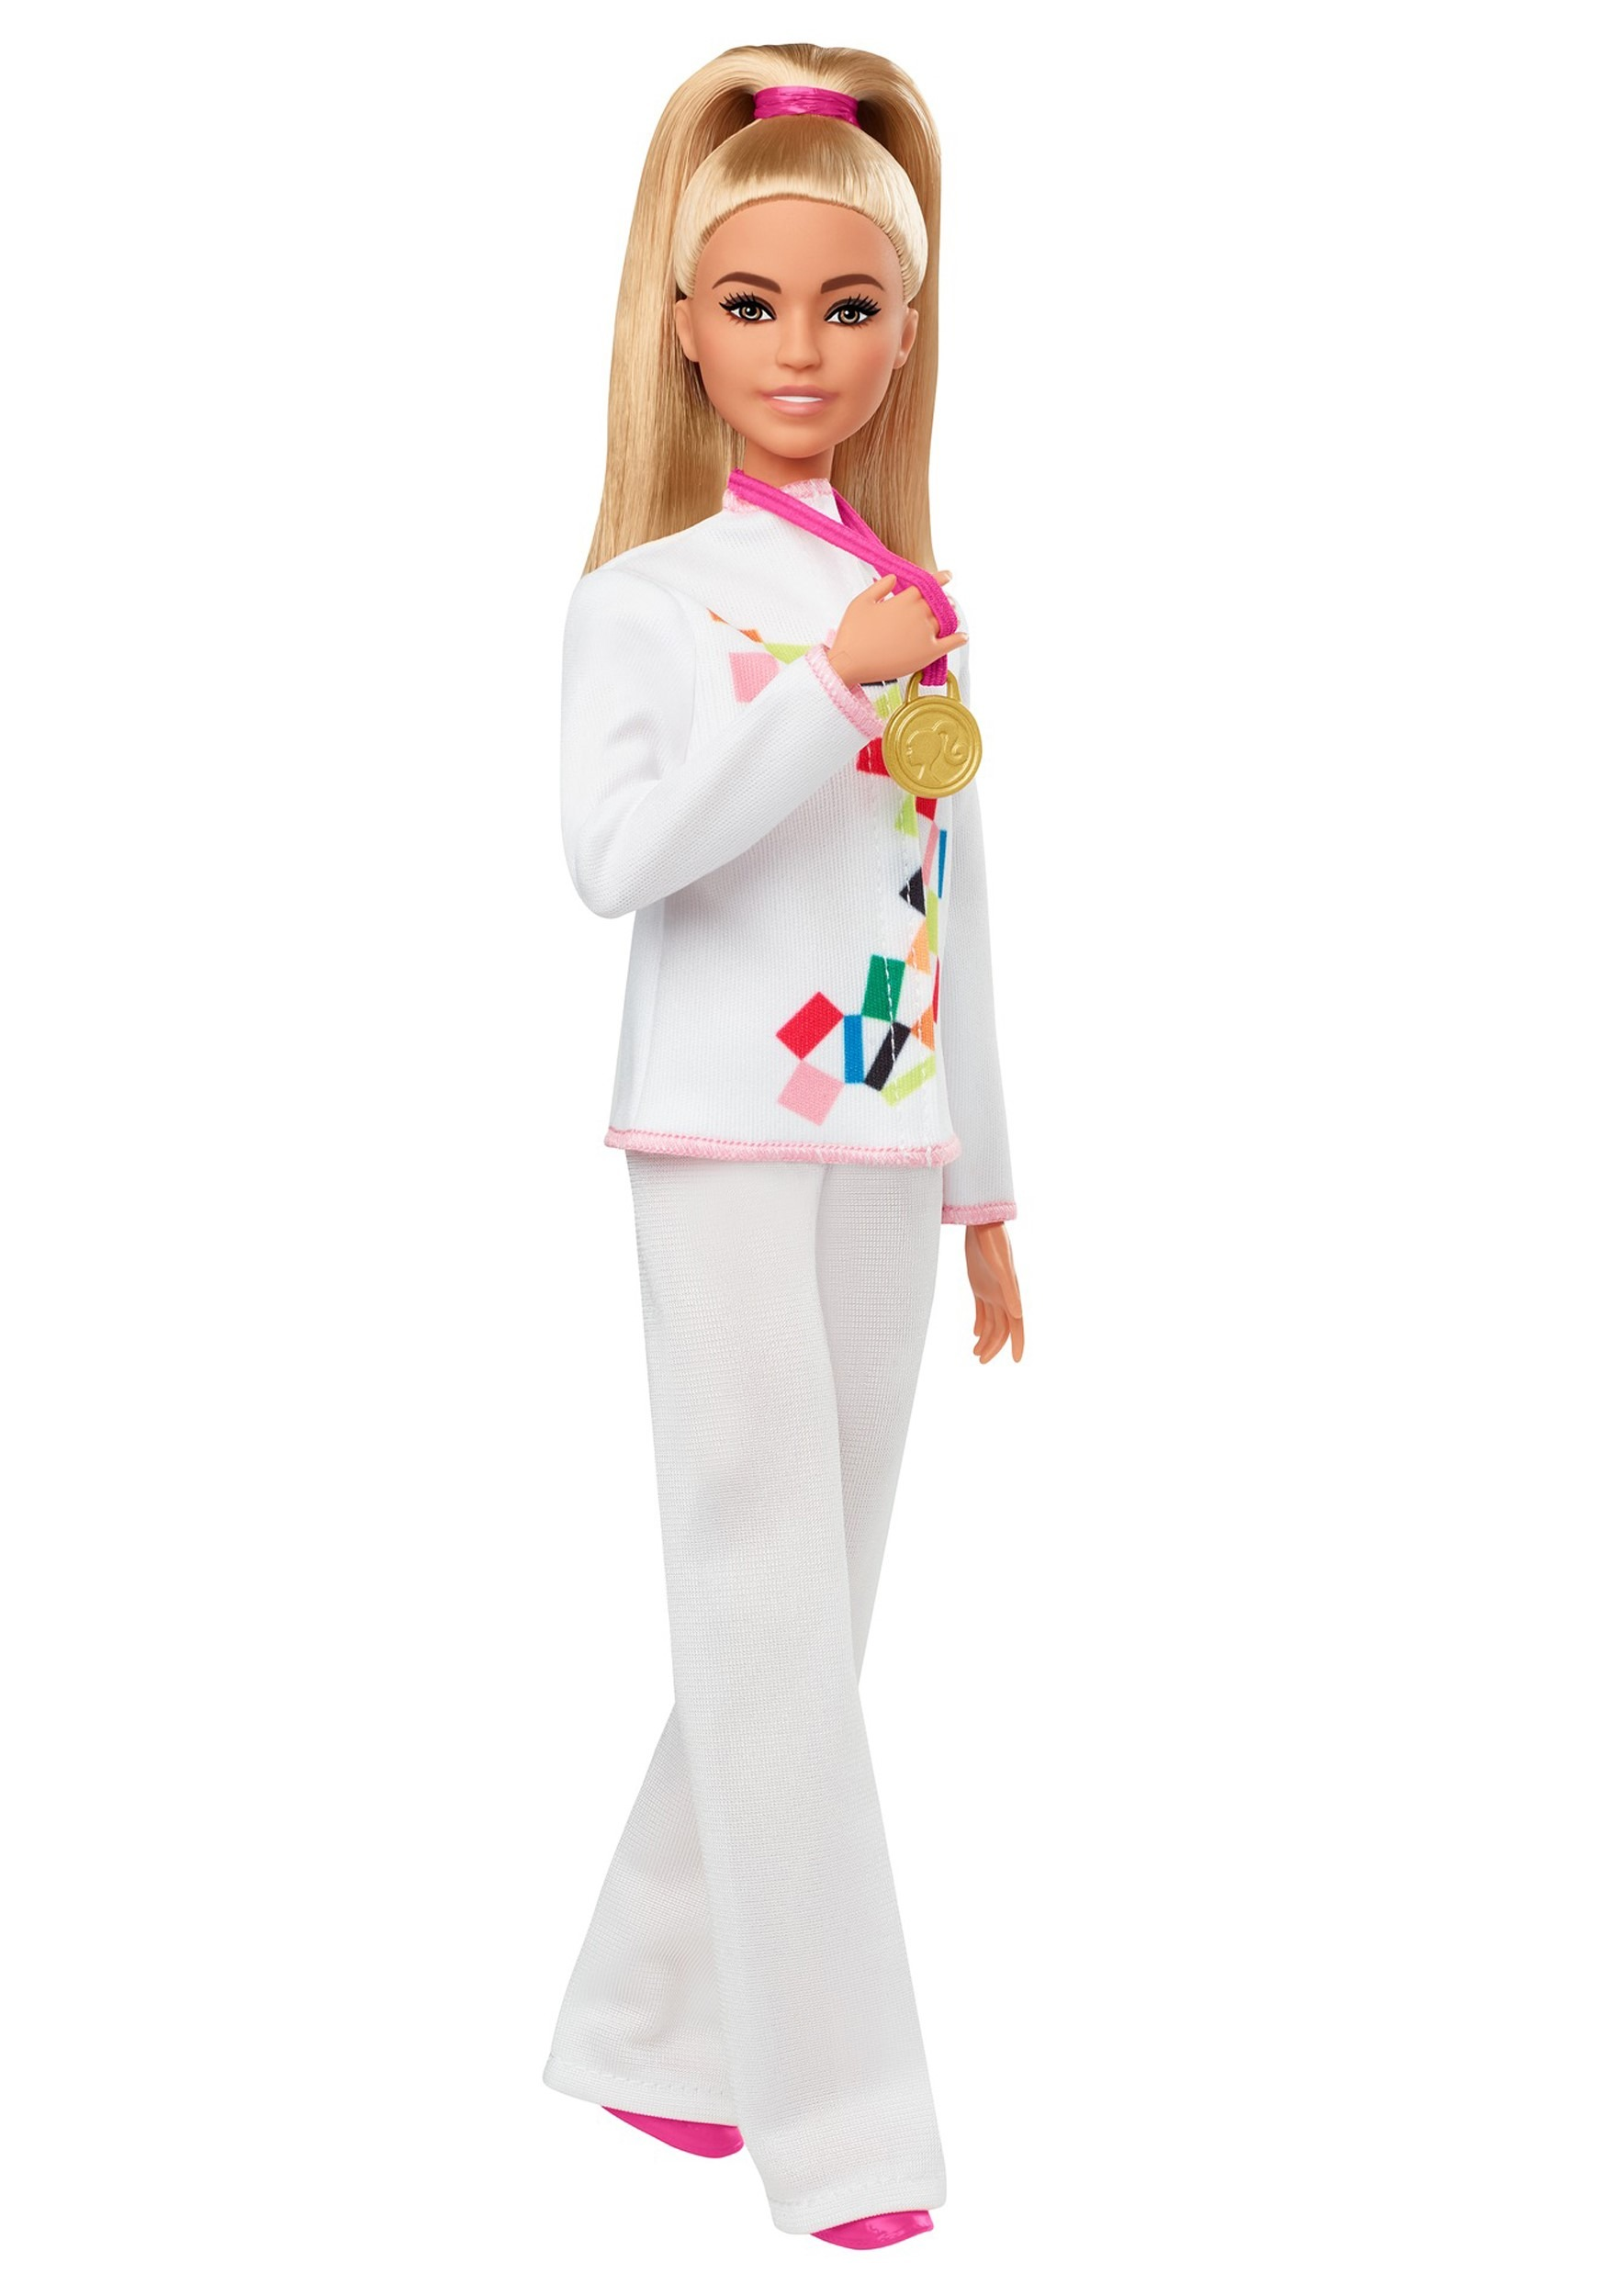 How The Grinch Stole Christmas 2020 Olympics Barbie  Tokyo Olympics 2020 Karate Doll